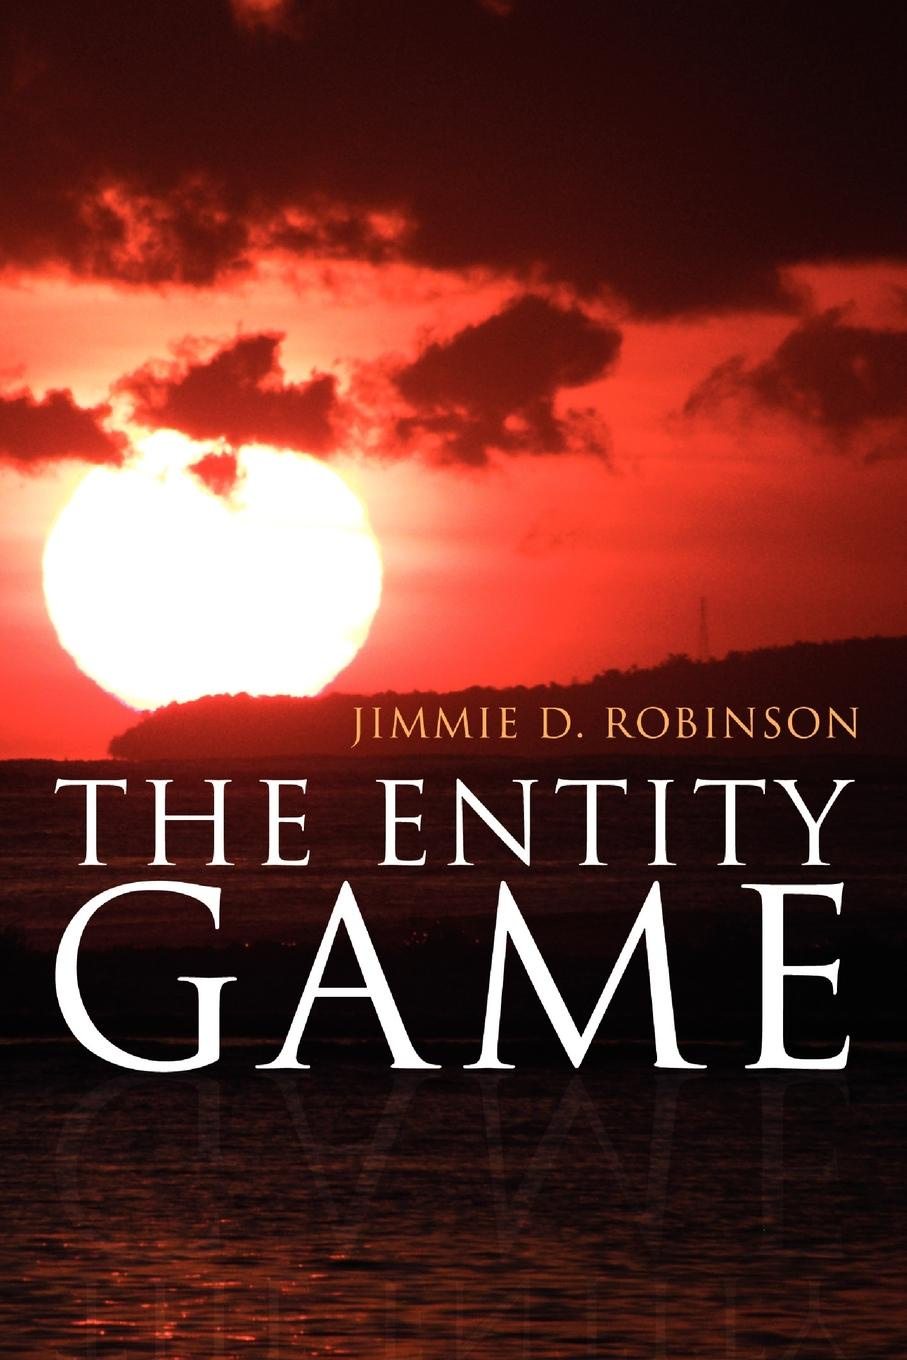 Jimmie D. Robinson The Entity Game